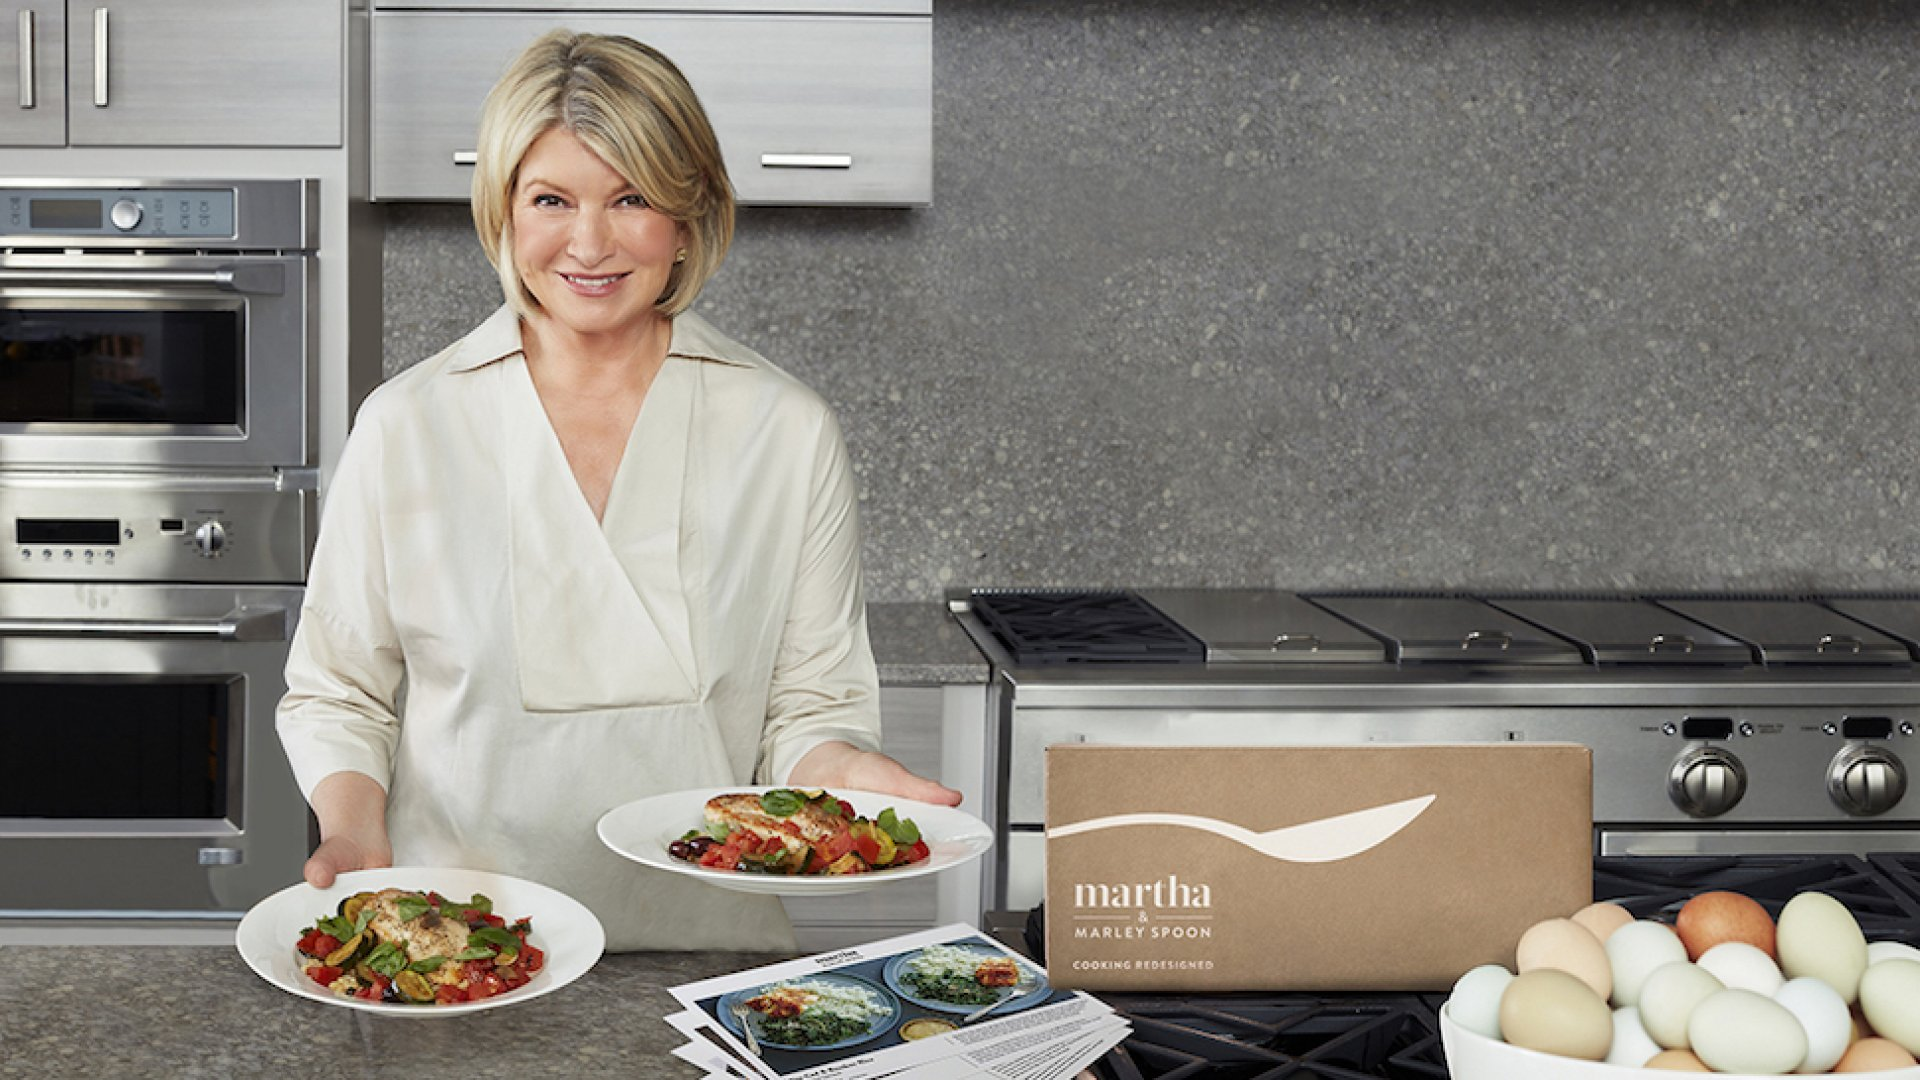 Martha Stewart with her meal kit subscription box Martha & Marley Spoon.